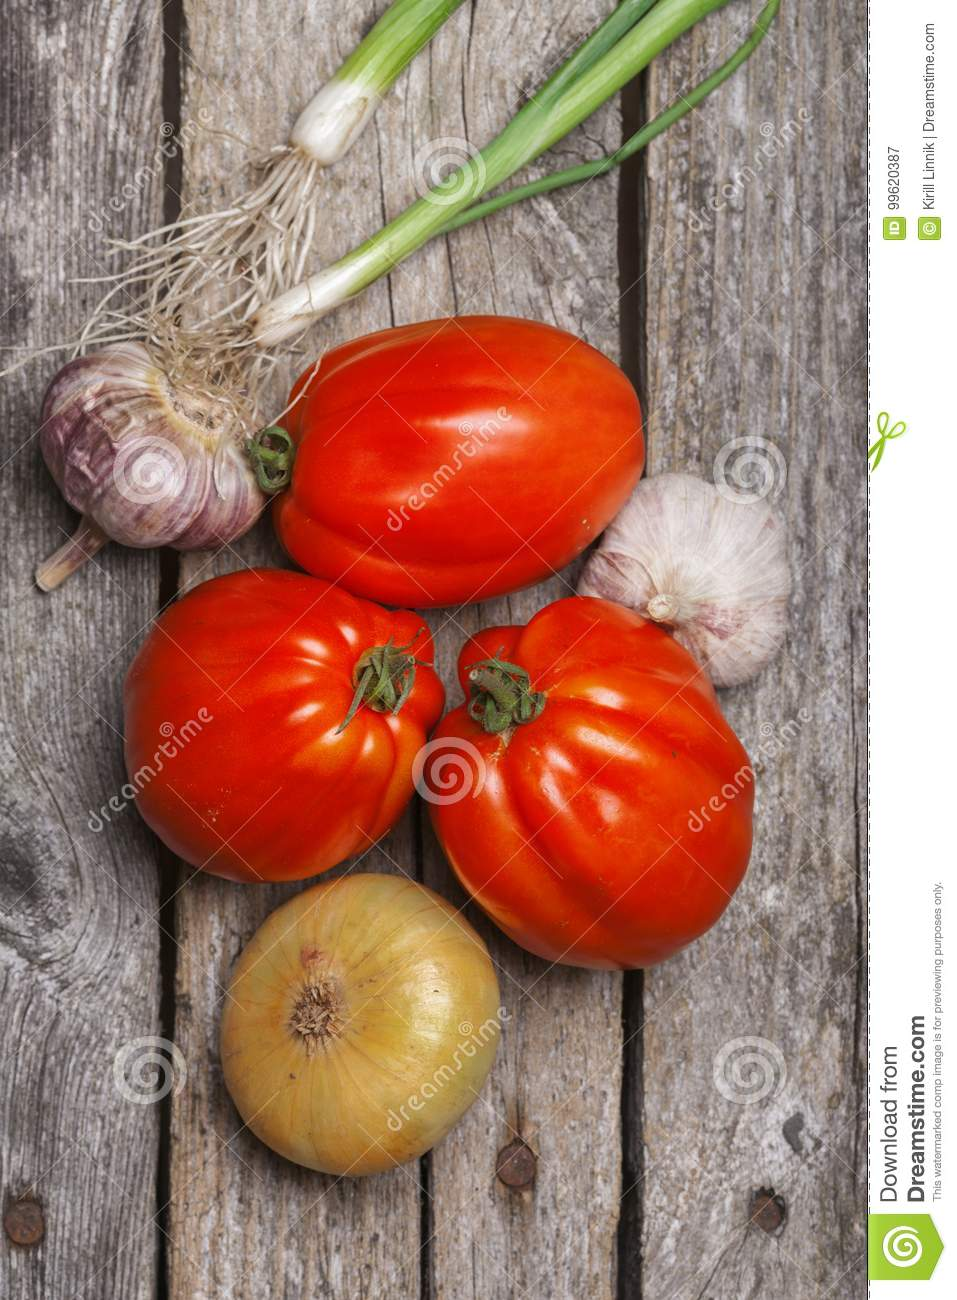 Download Tomatoes, Onion And Garlic On The Table Stock Image - Image of dark, nutrition: 99620387